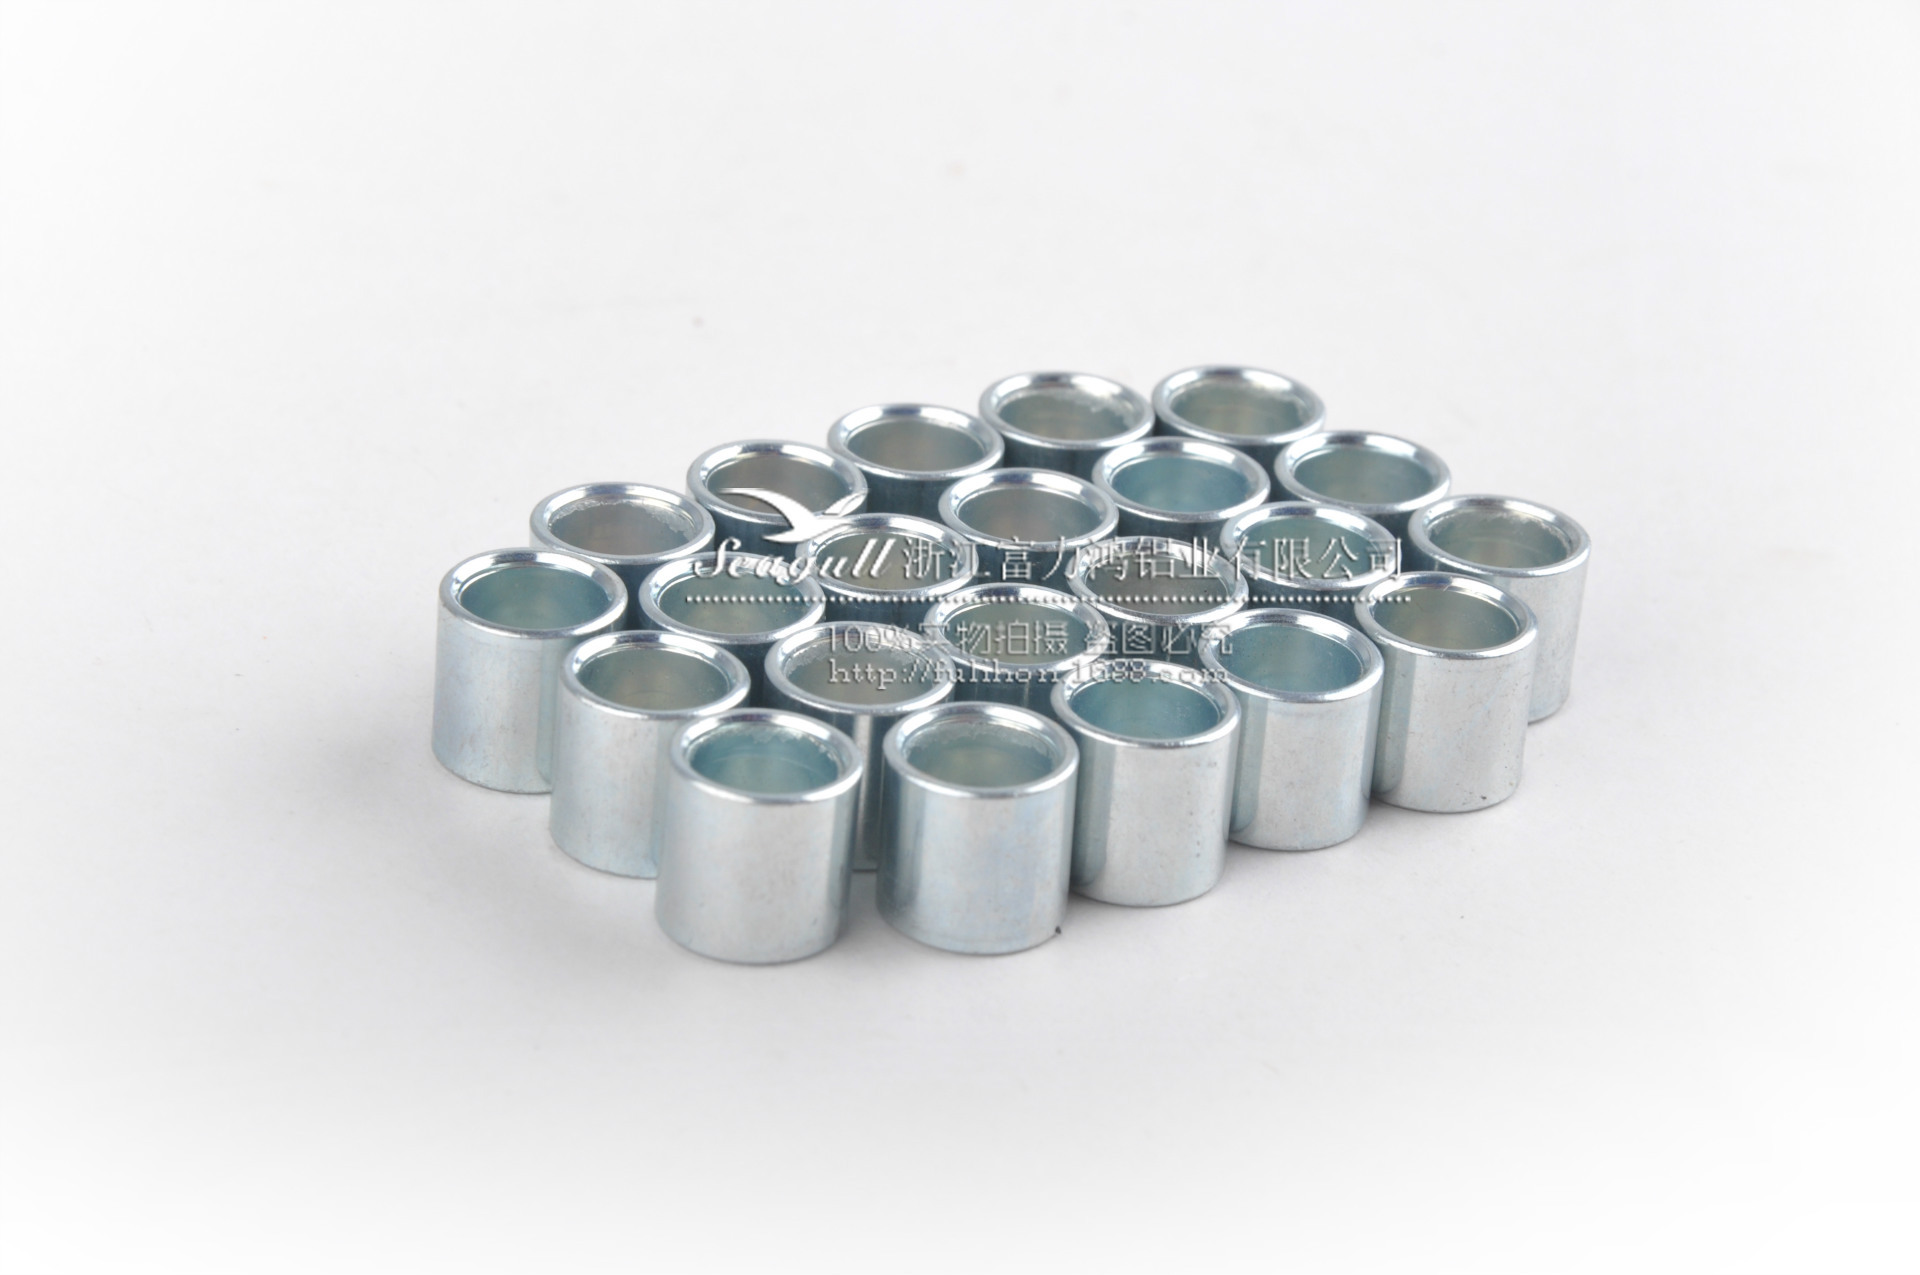 Manufacturers Direct Selling Four Wheel Skateboard Bearing House, Spacer Sleeves, Skateboard Accessory, Fish Skateboard Accessor